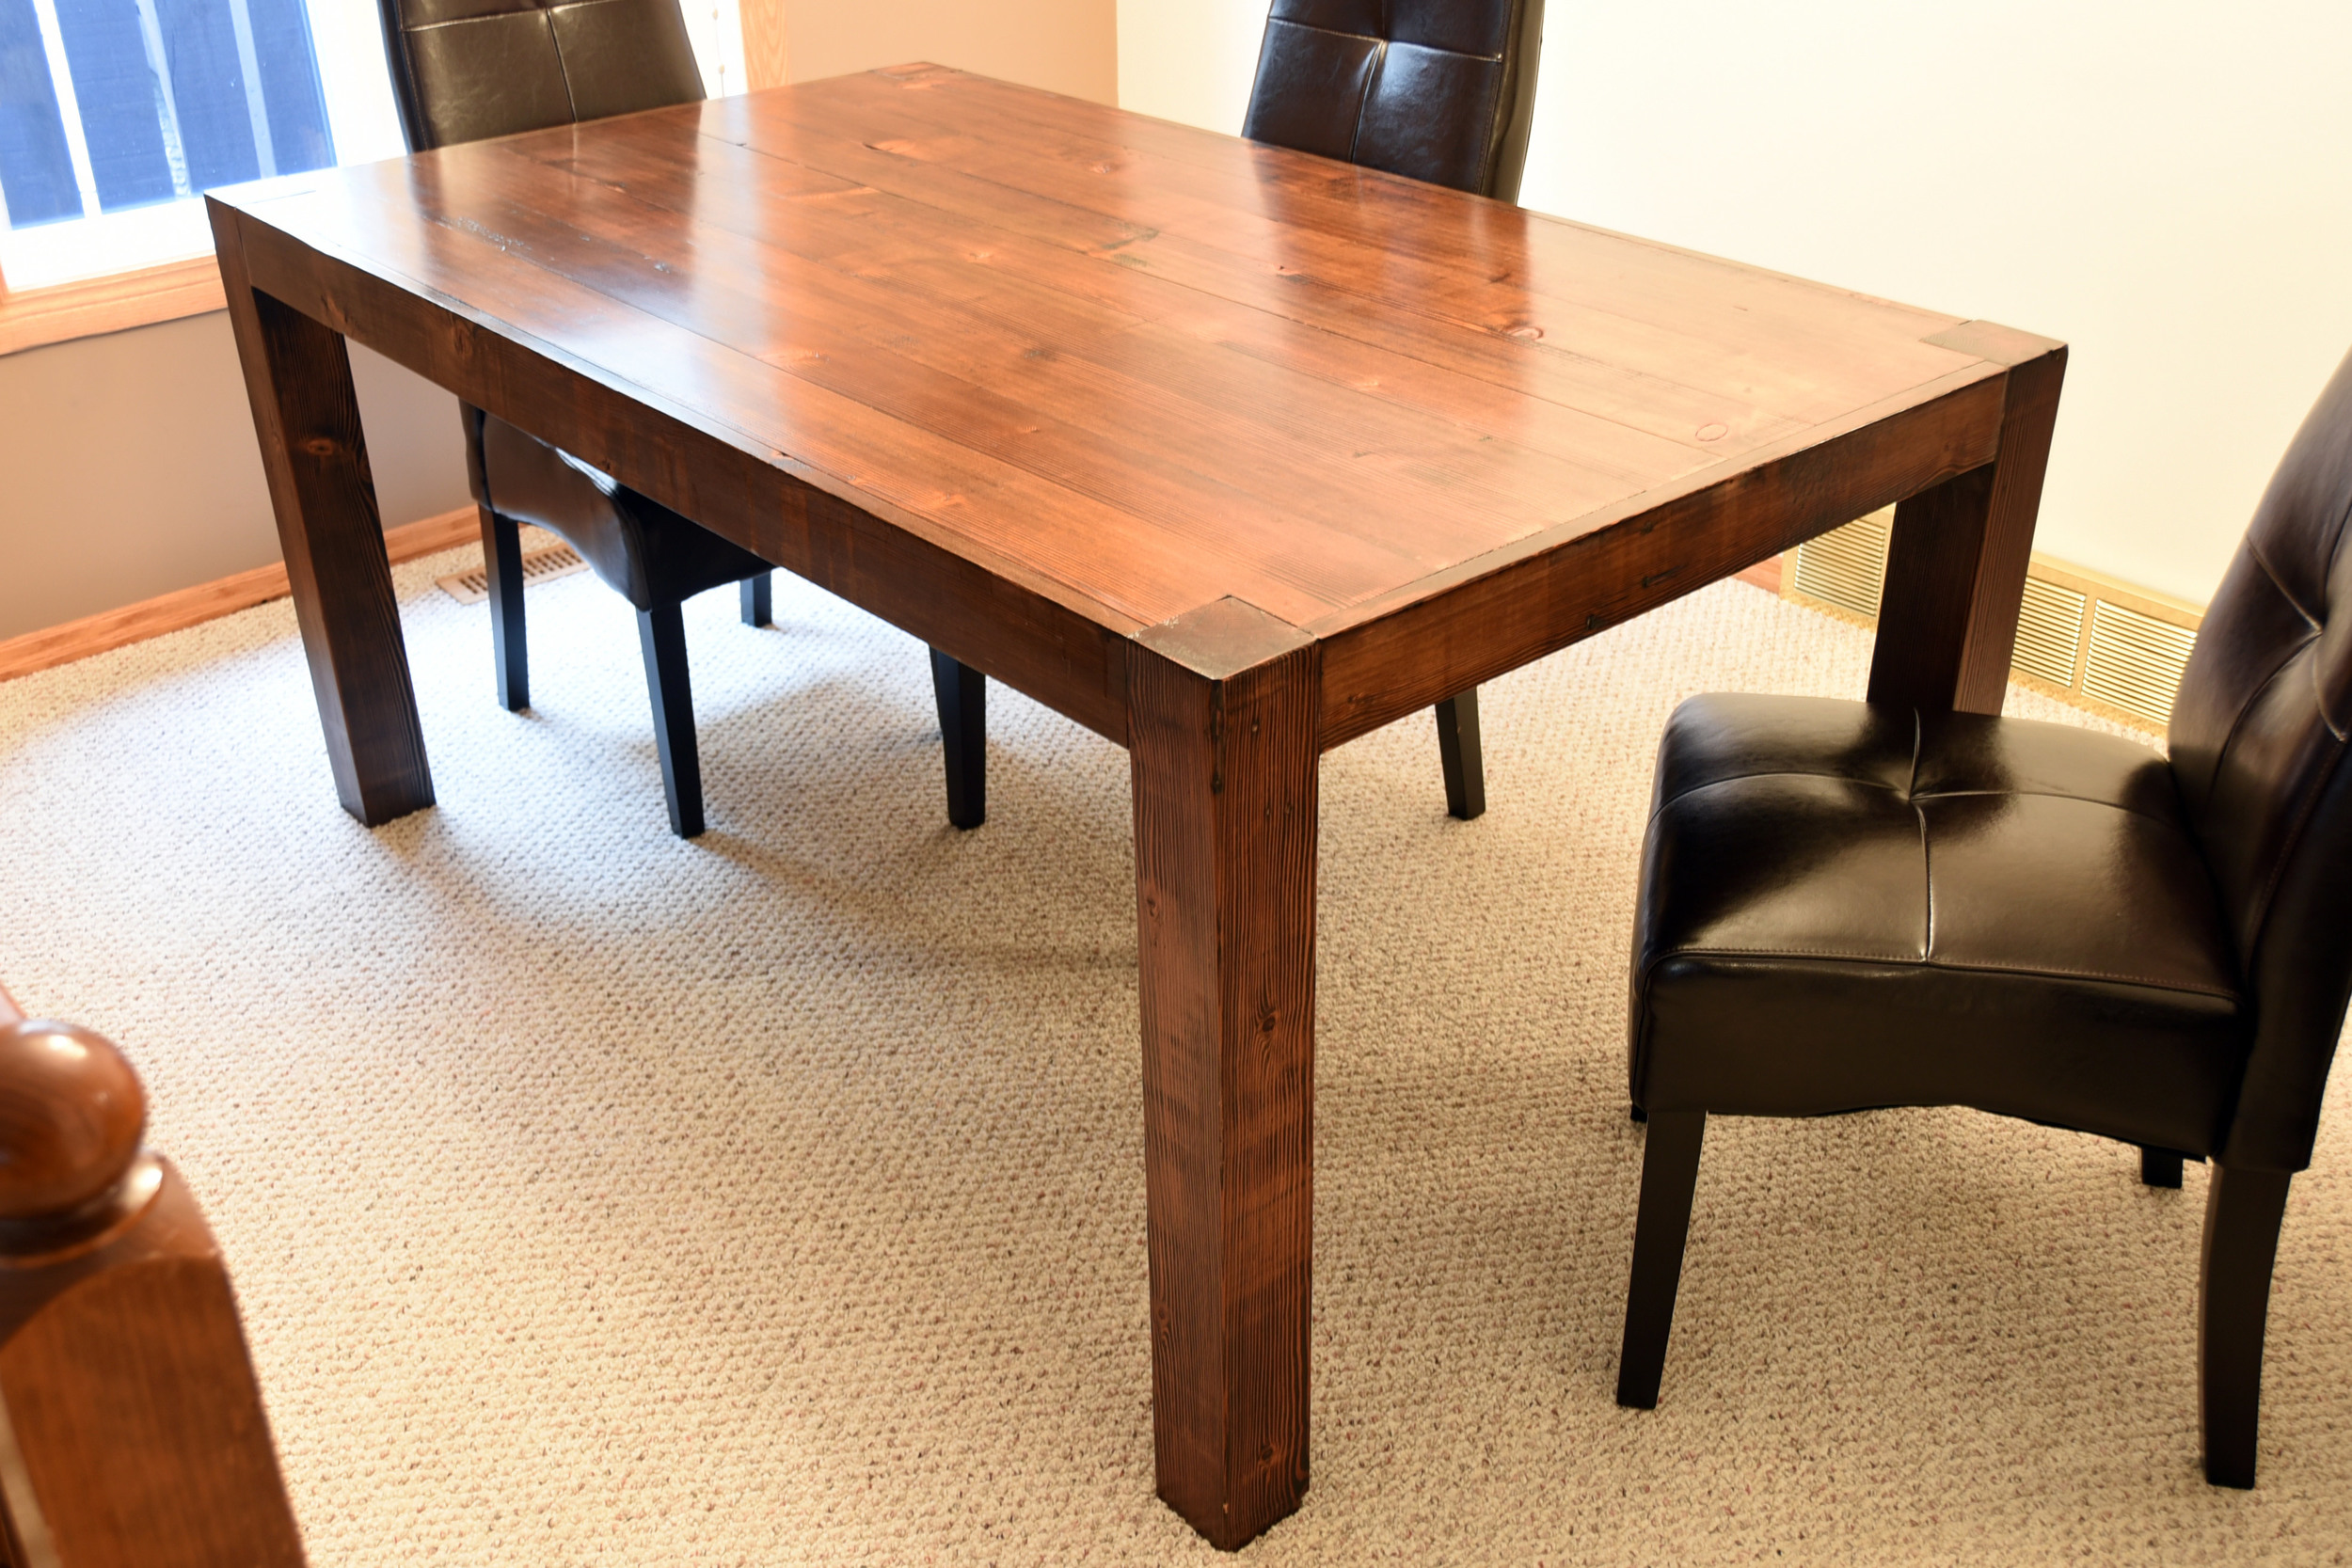 mortise-and-tenon-rustic-reclaimed-dining-table.jpg